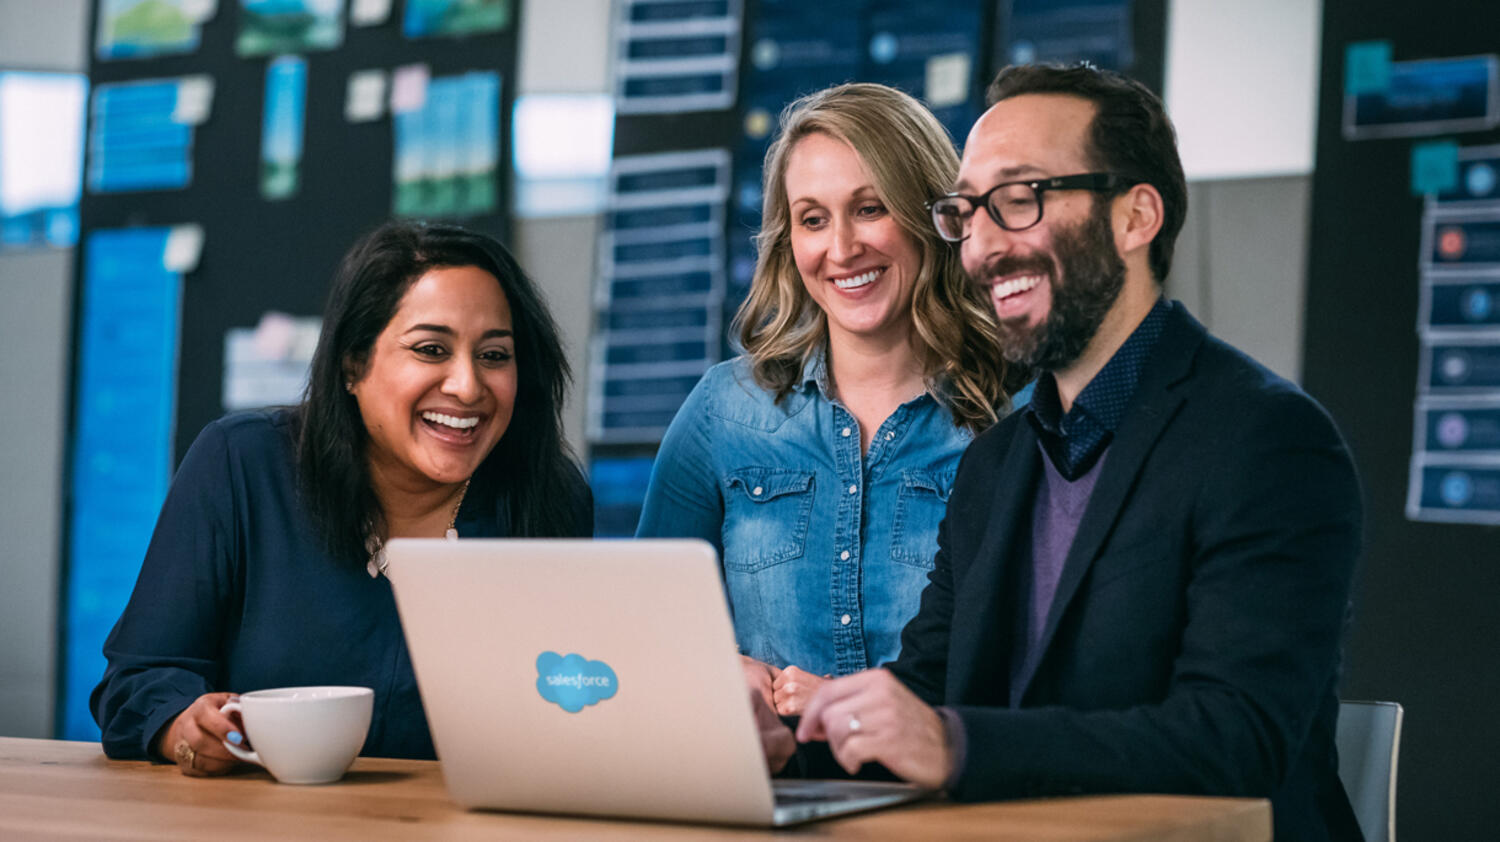 How has Salesforce kept their culture strong and maintained a great place to work through massive growth? Salesforce's EVP of Employee Success, Cindy Robbins, offers key culture five lessons they've learned along the way.